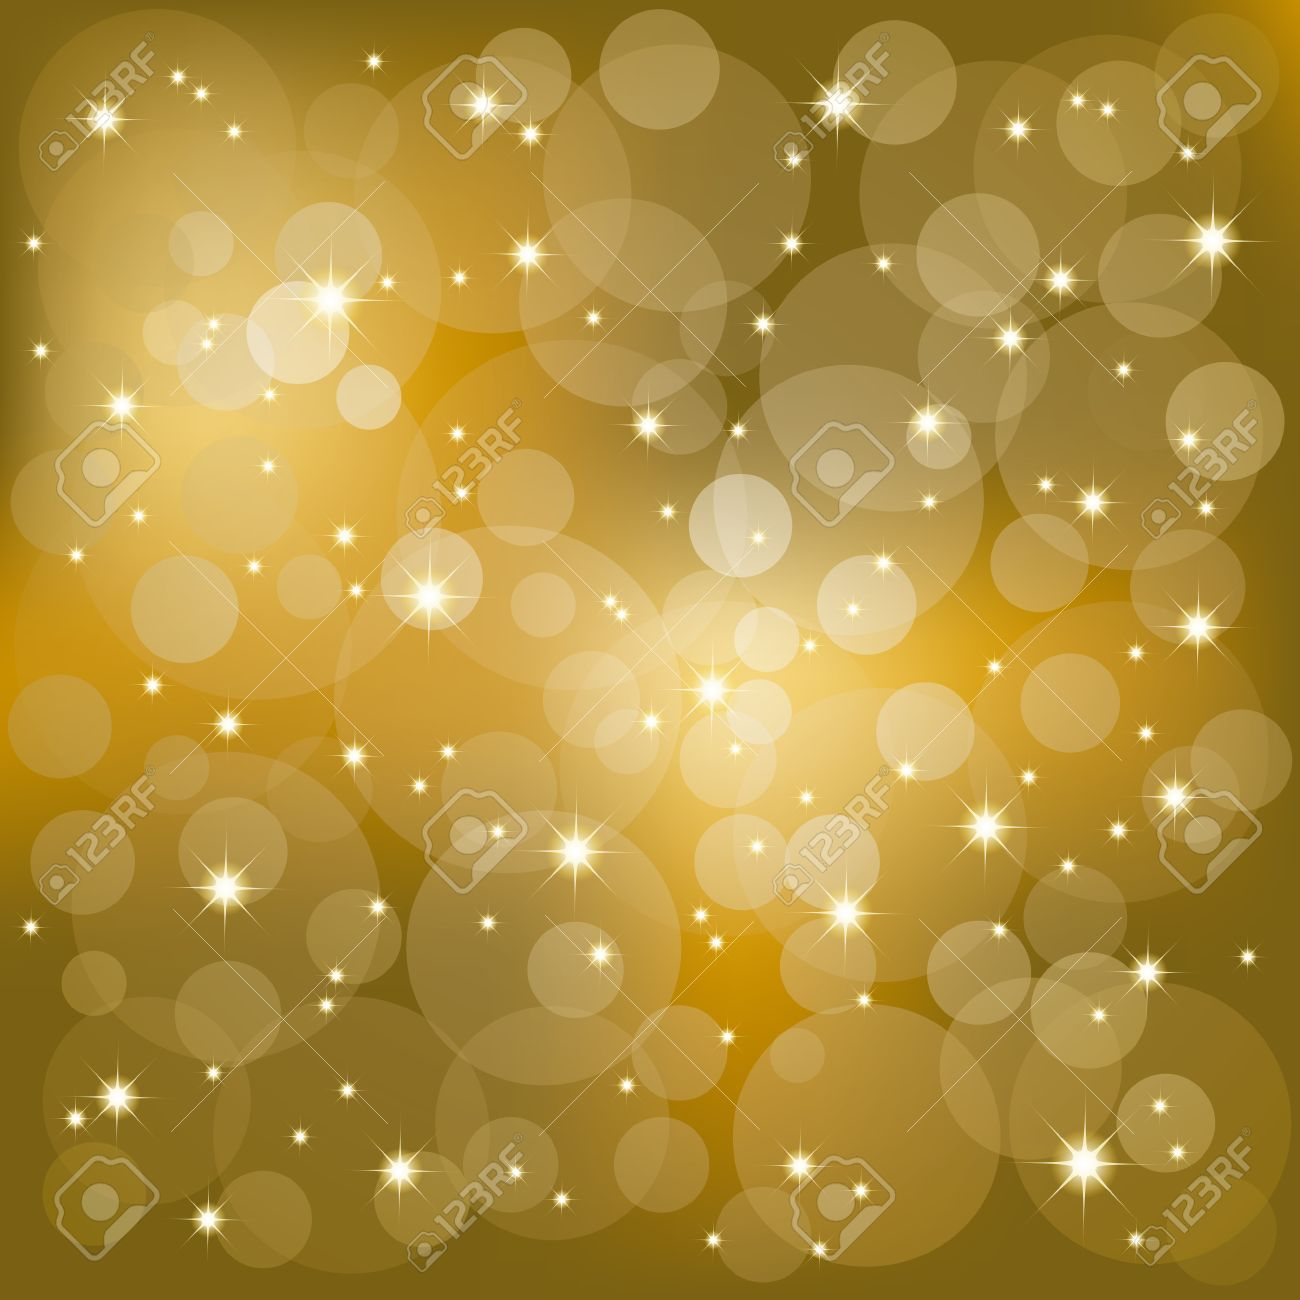 Gold glitter bright vector transparent background golden sparkles - Abstract Golden Sparkling Stars Light Background Stock Vector 6446814